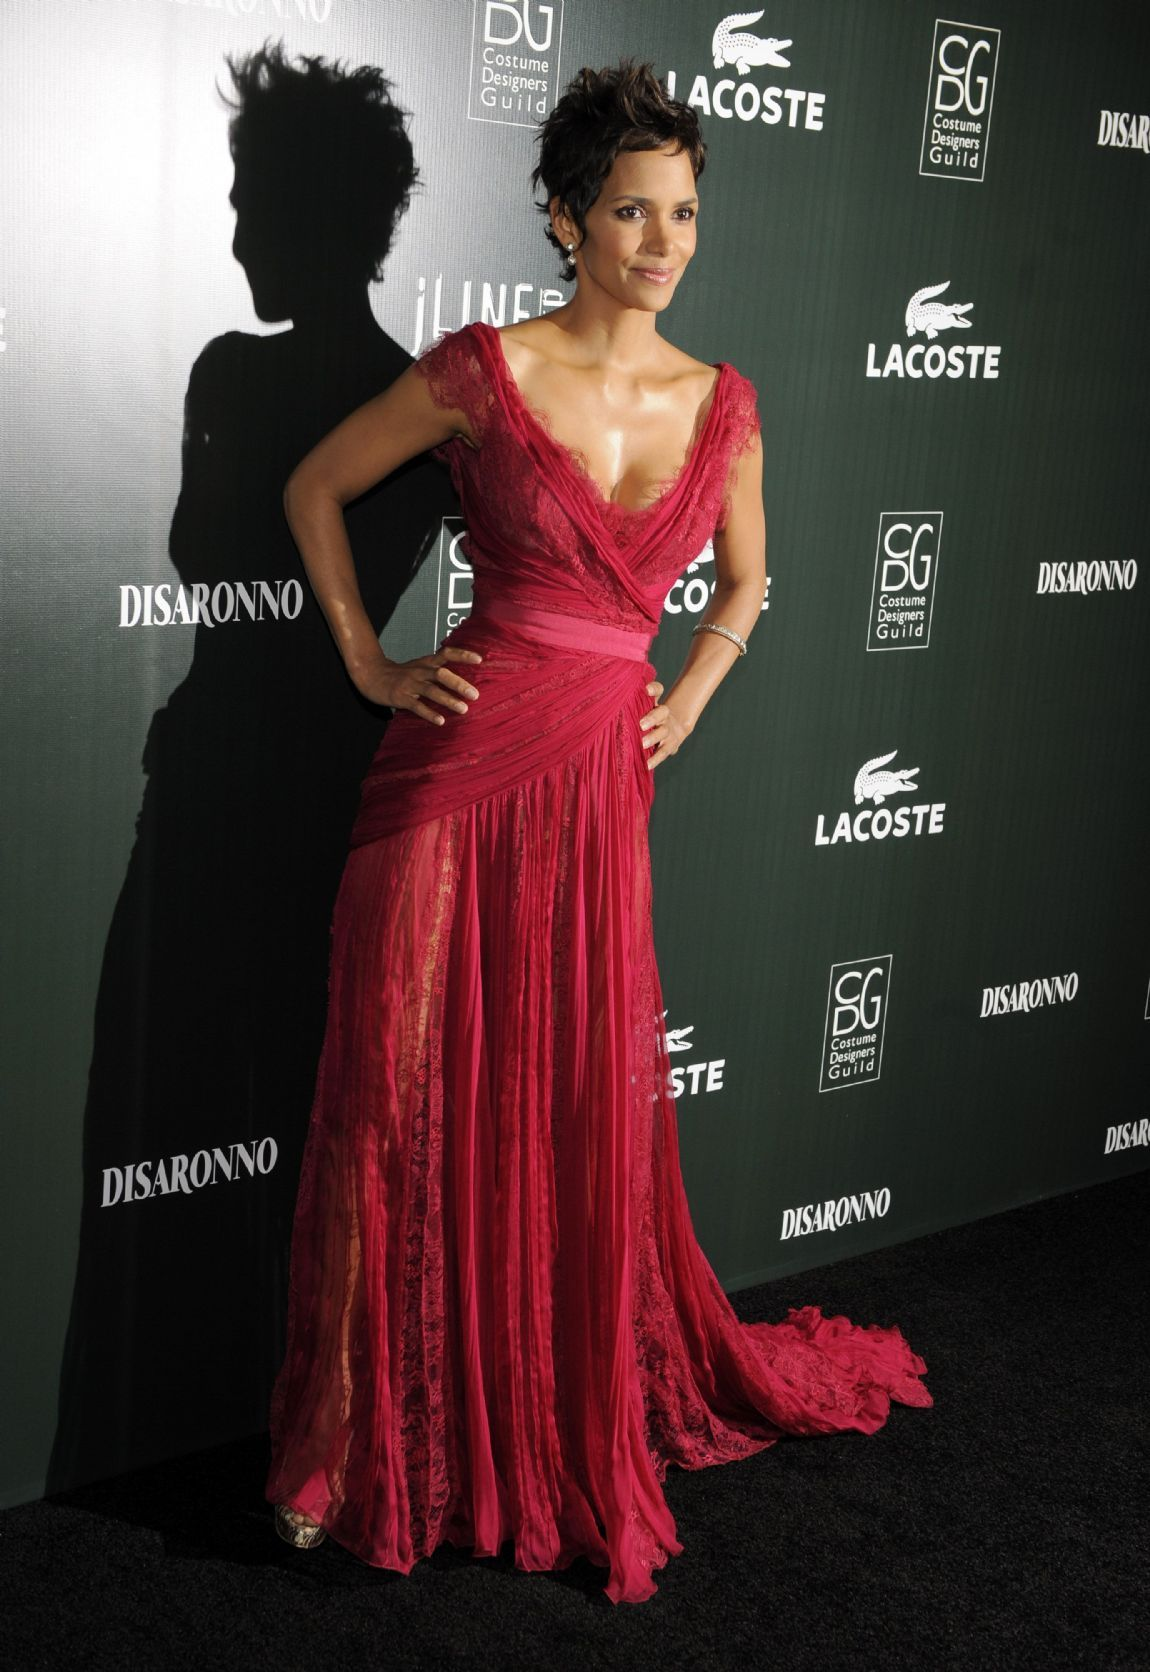 e706d1f6535 Halle Berry wearing Elie Saab at the 13th Annual Costume Designers Guild  Awards at The Beverly Hilton Hotel in Beverly Hills, February 2011.